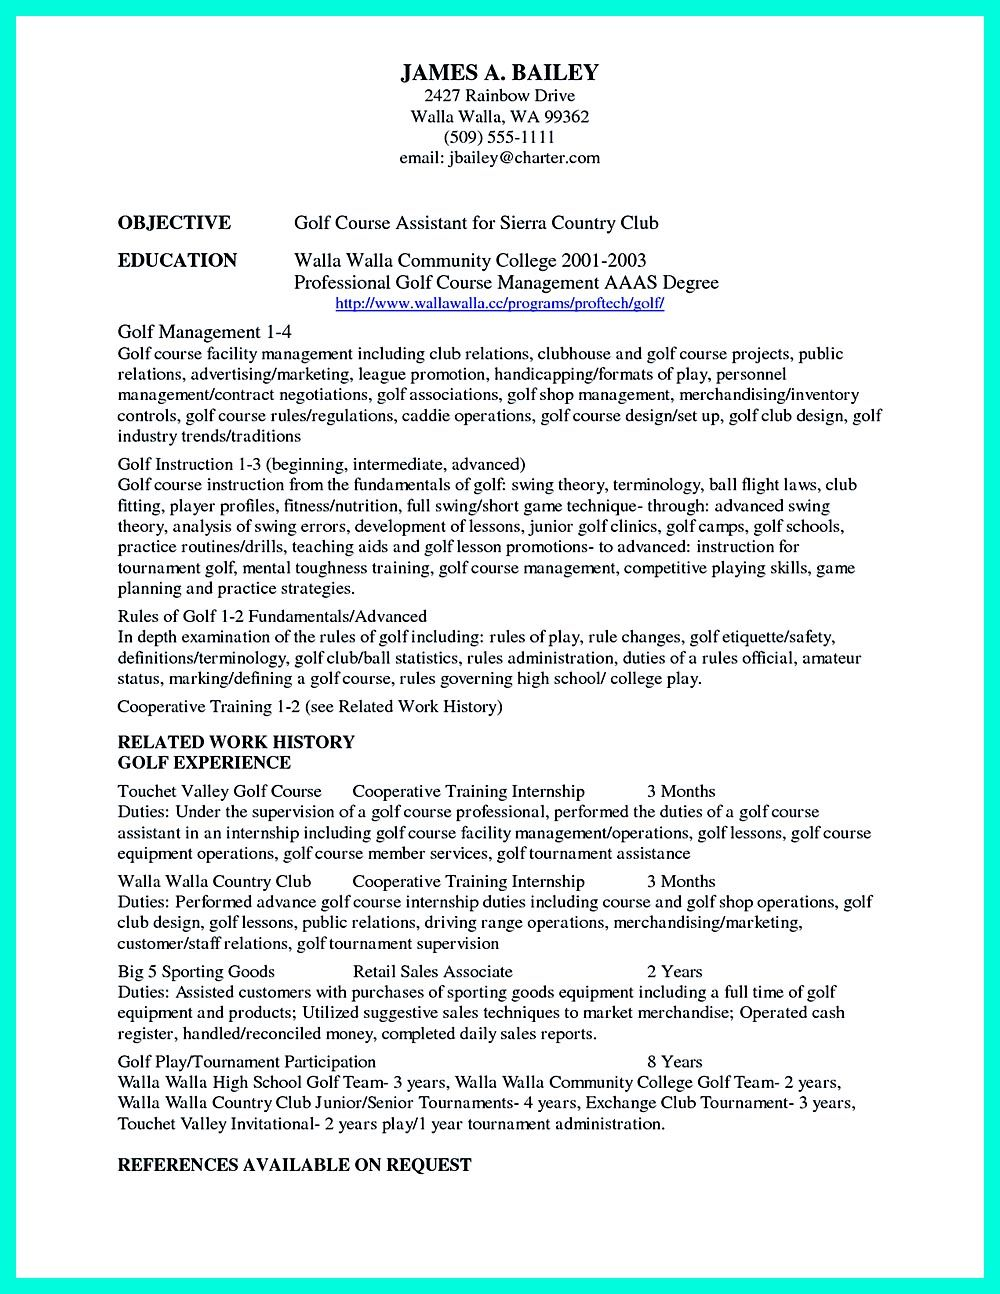 Making Simple College Golf Resume With Basic But Effective Information